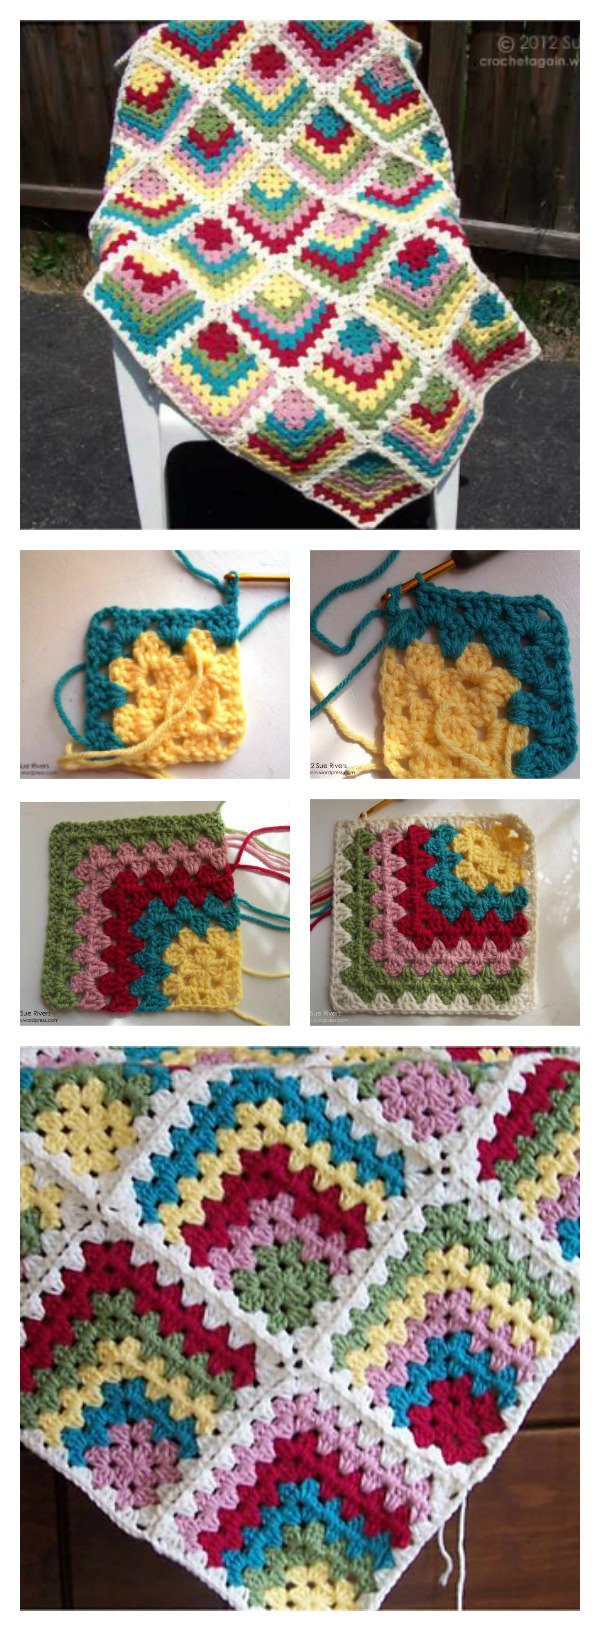 Free Granny Square Afghan Patterns Lovely Free Mitered Granny Square Afghan Crochet Pattern Of Amazing 46 Pictures Free Granny Square Afghan Patterns